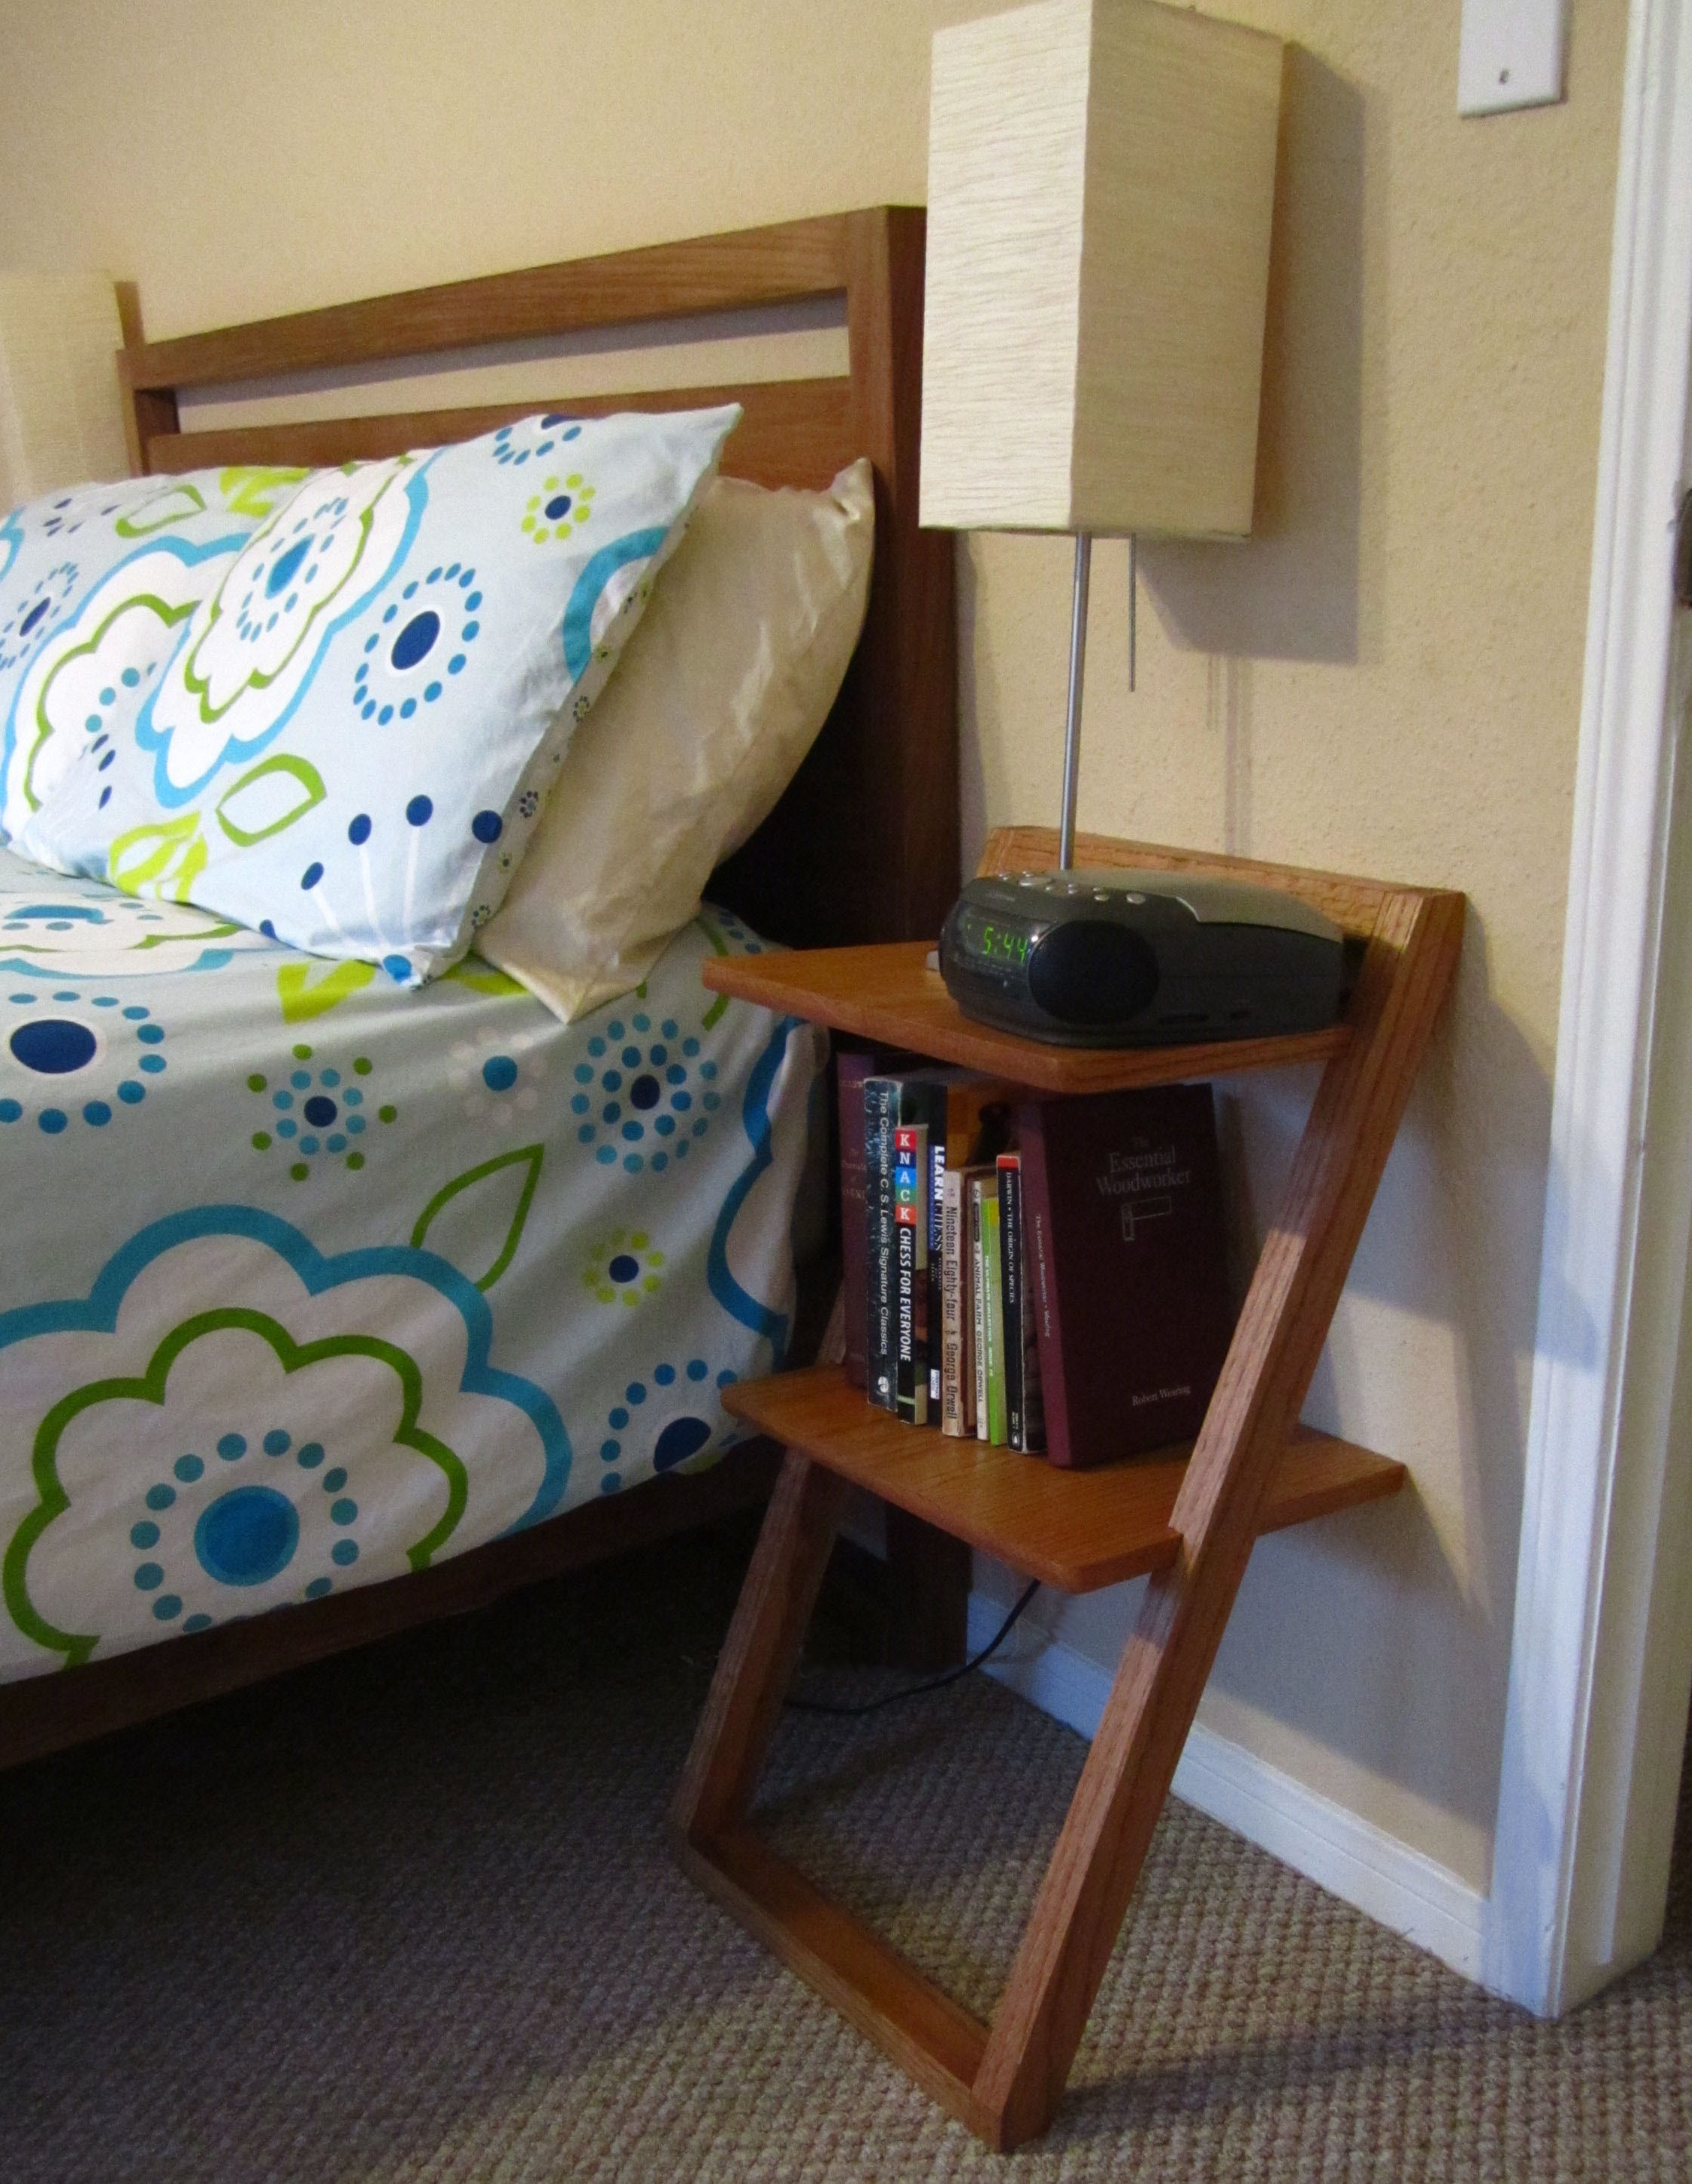 Leaning Bedside Table Shelves   T R I A L & E R R O R